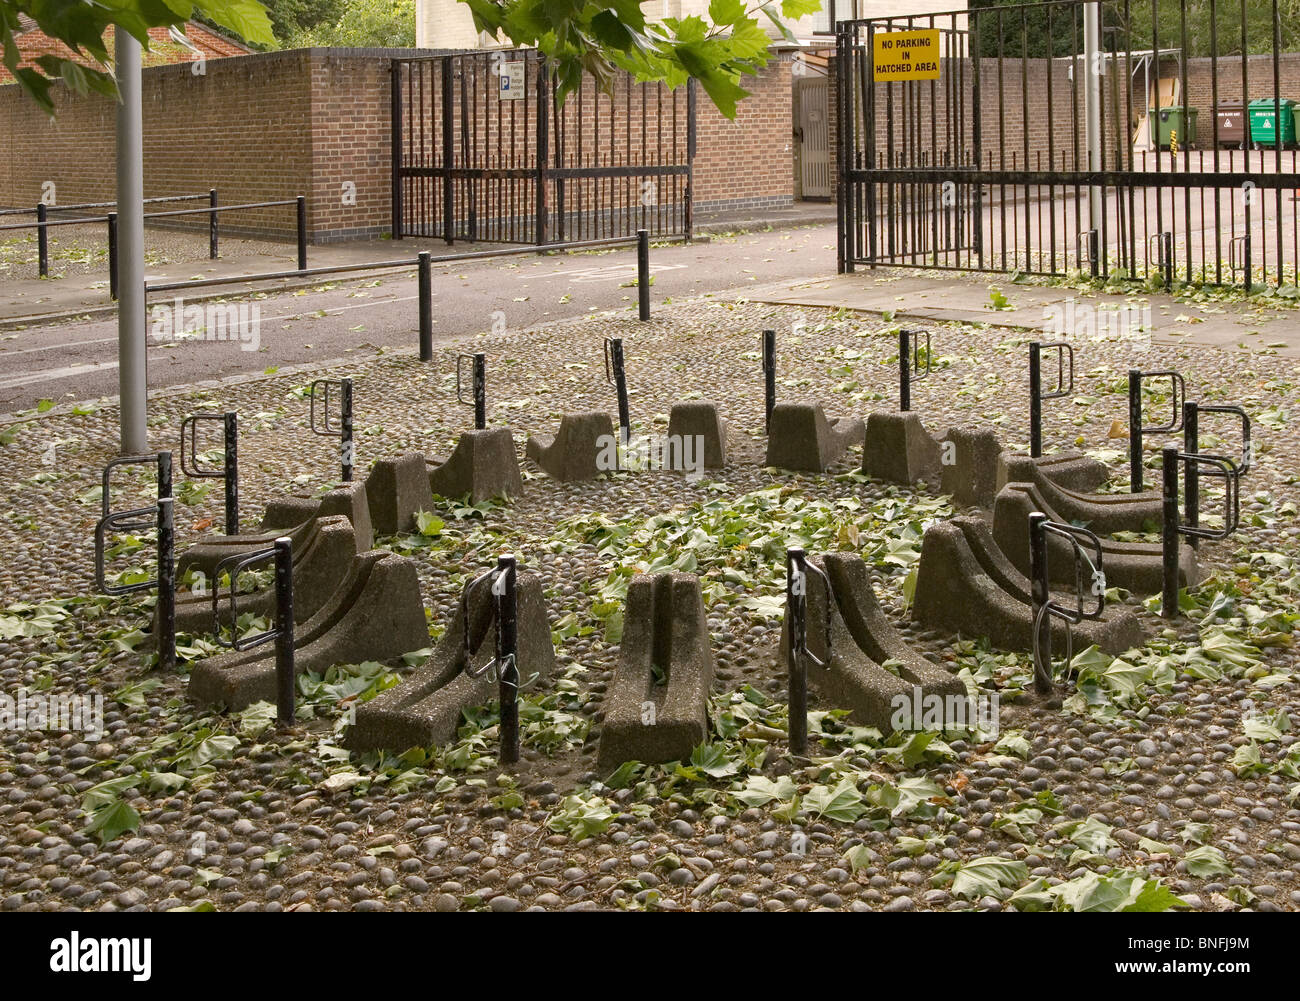 A ring of insecure bicycle stands at Cambridge University - Stock Image